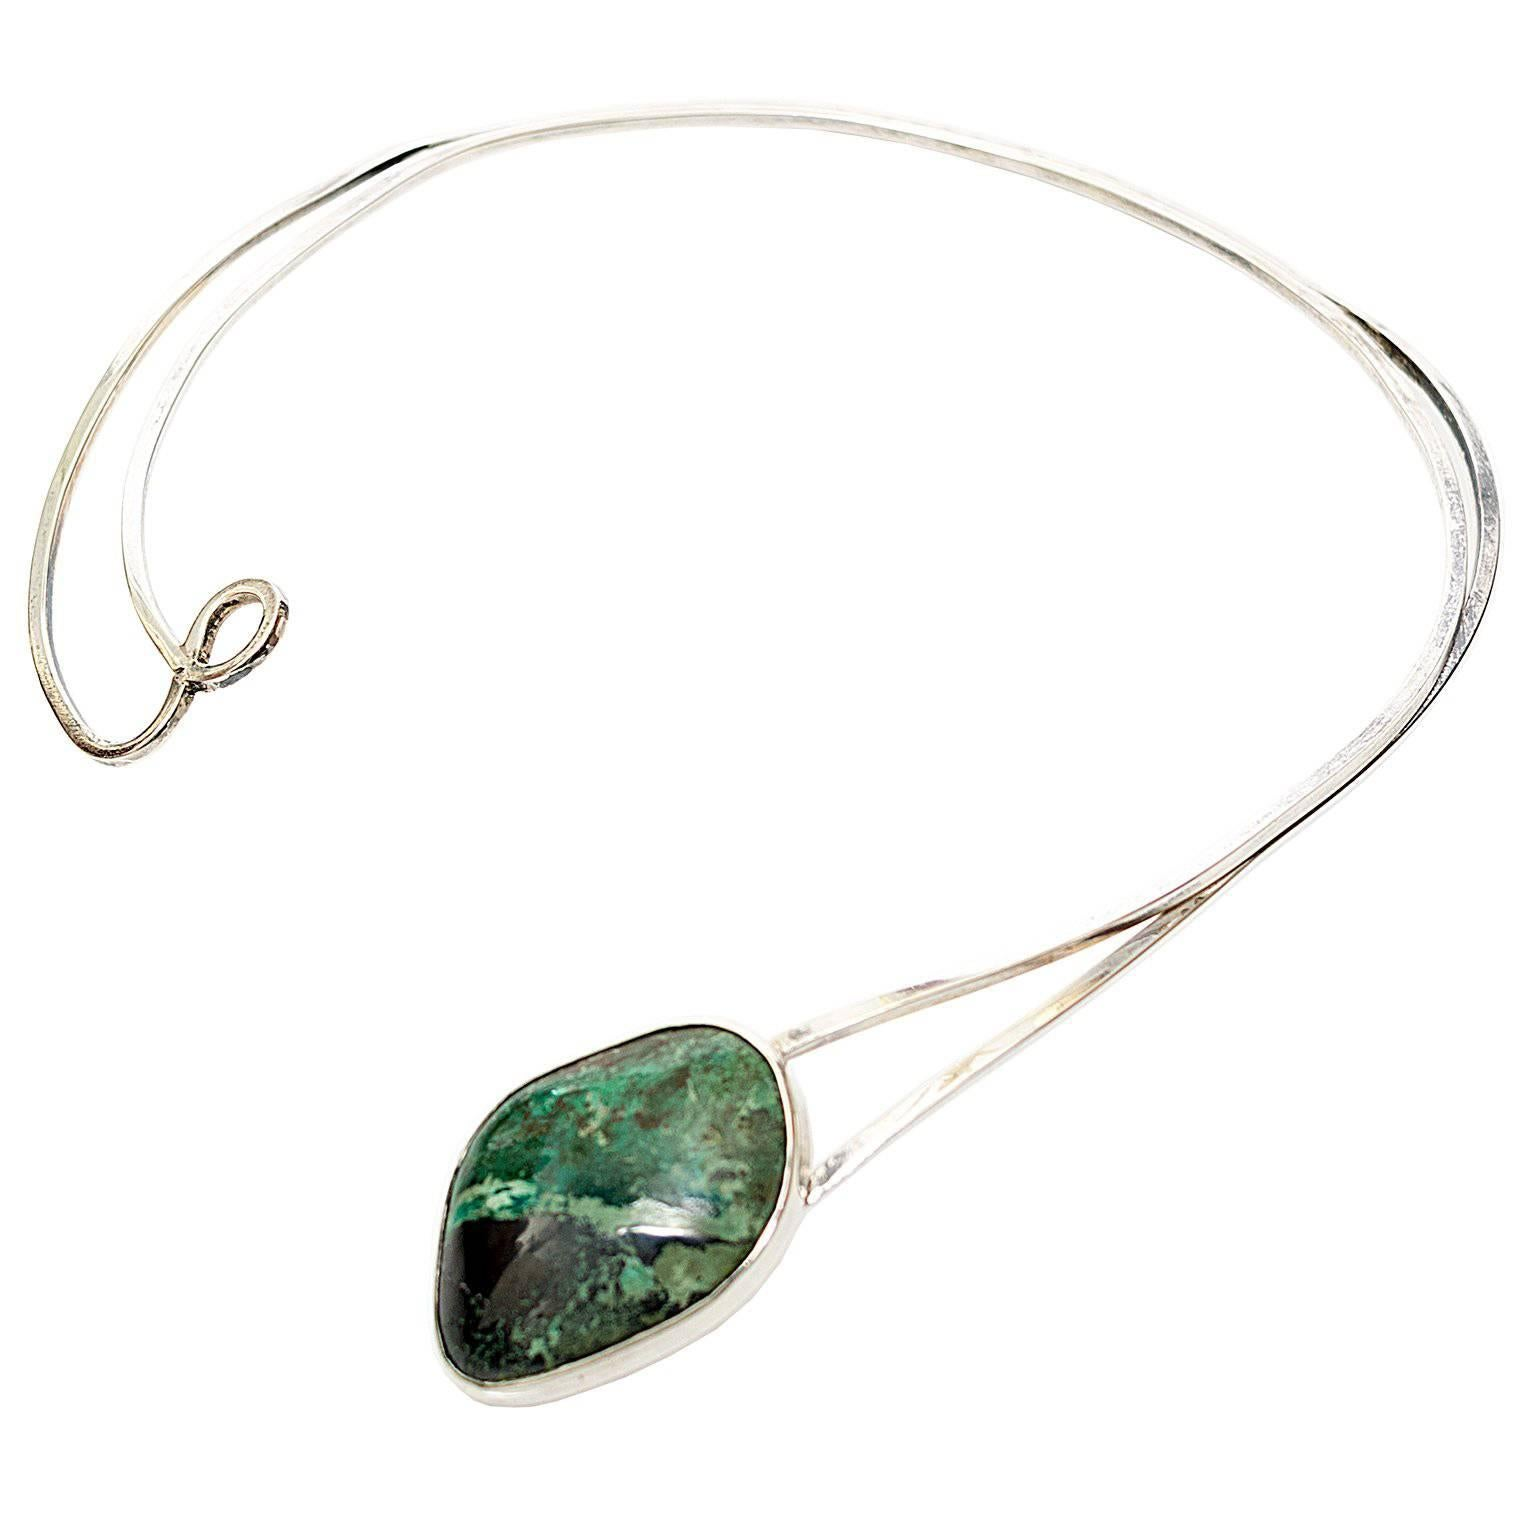 Scandinavian Modern Sterling Silver Necklace by Issac Cohen with Green Stone